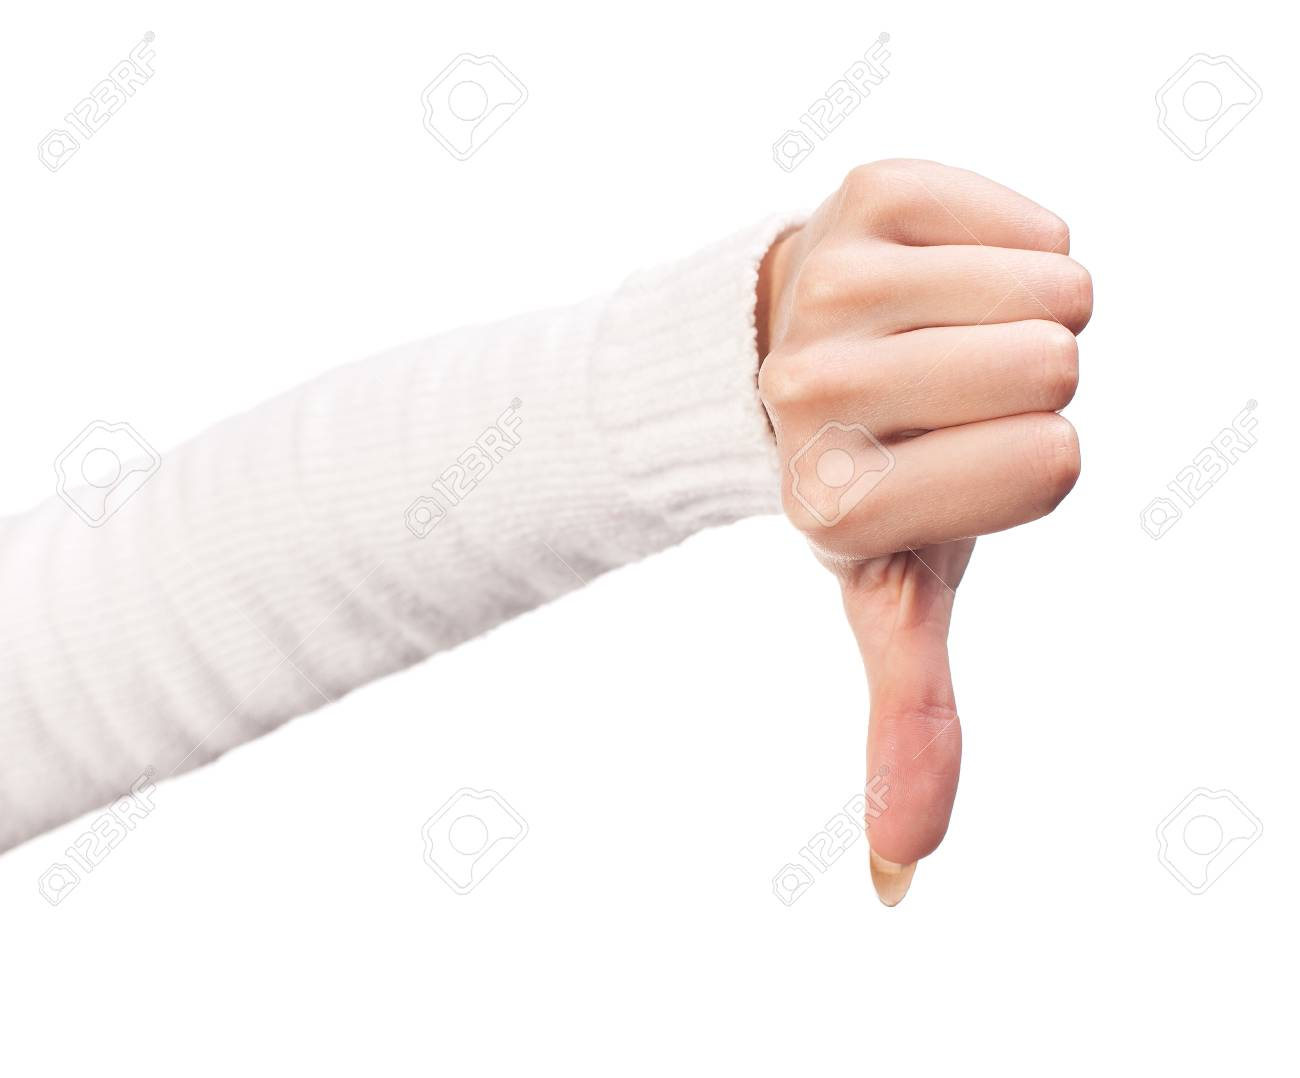 Thumb down female hand sign isolated on a white background Stock Photo - 16921936